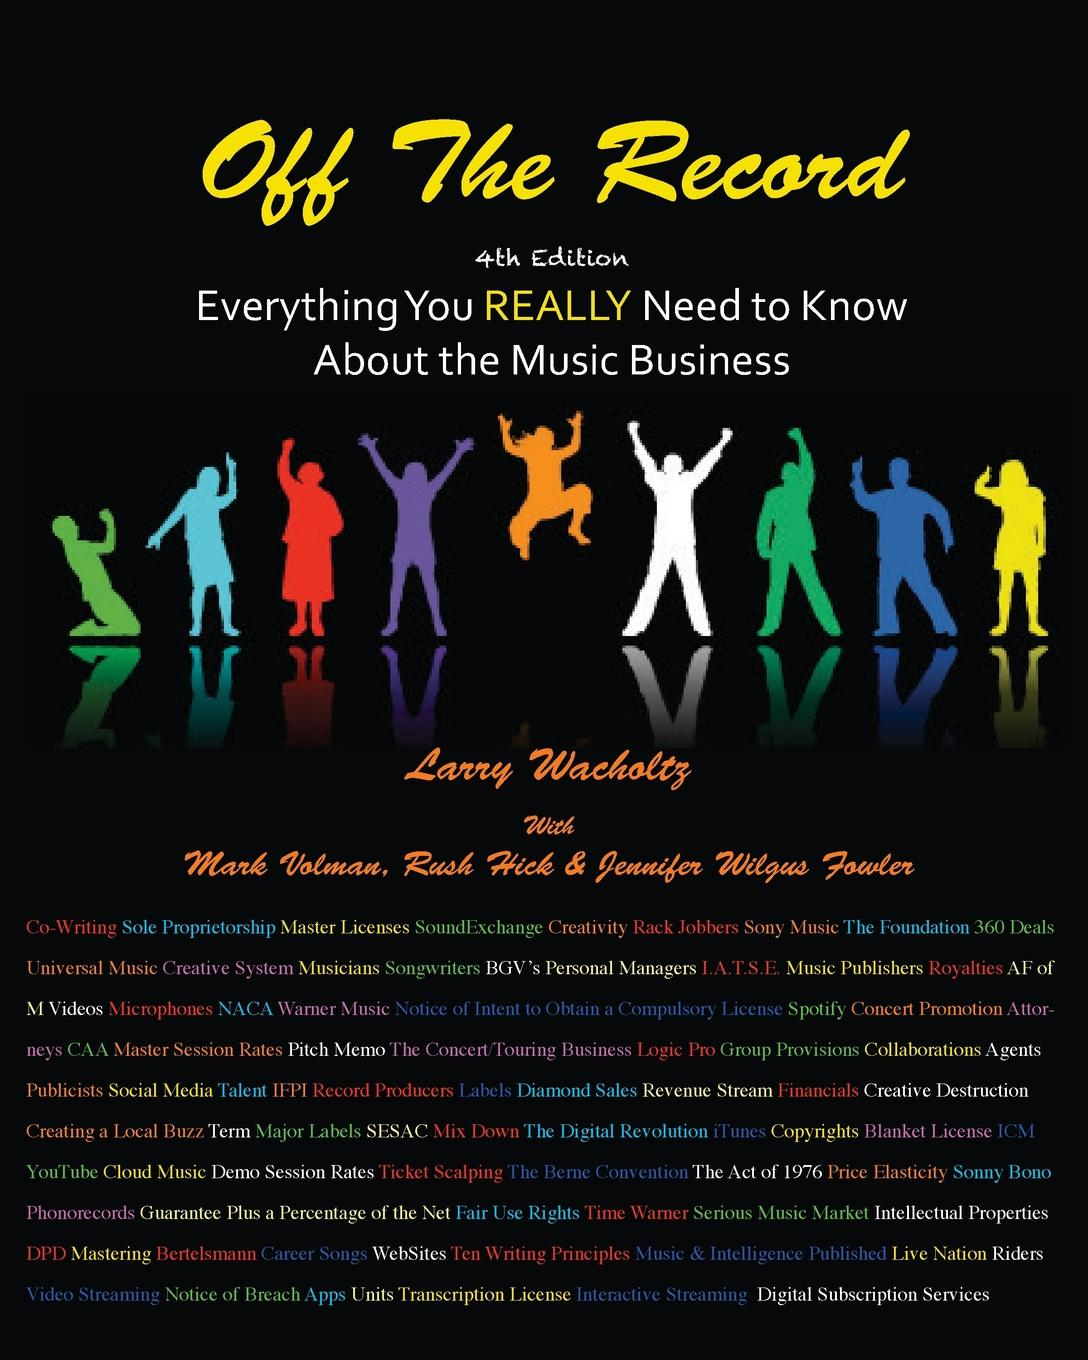 Off the Record A bunch of guys get together and start a band. From a legal/business...